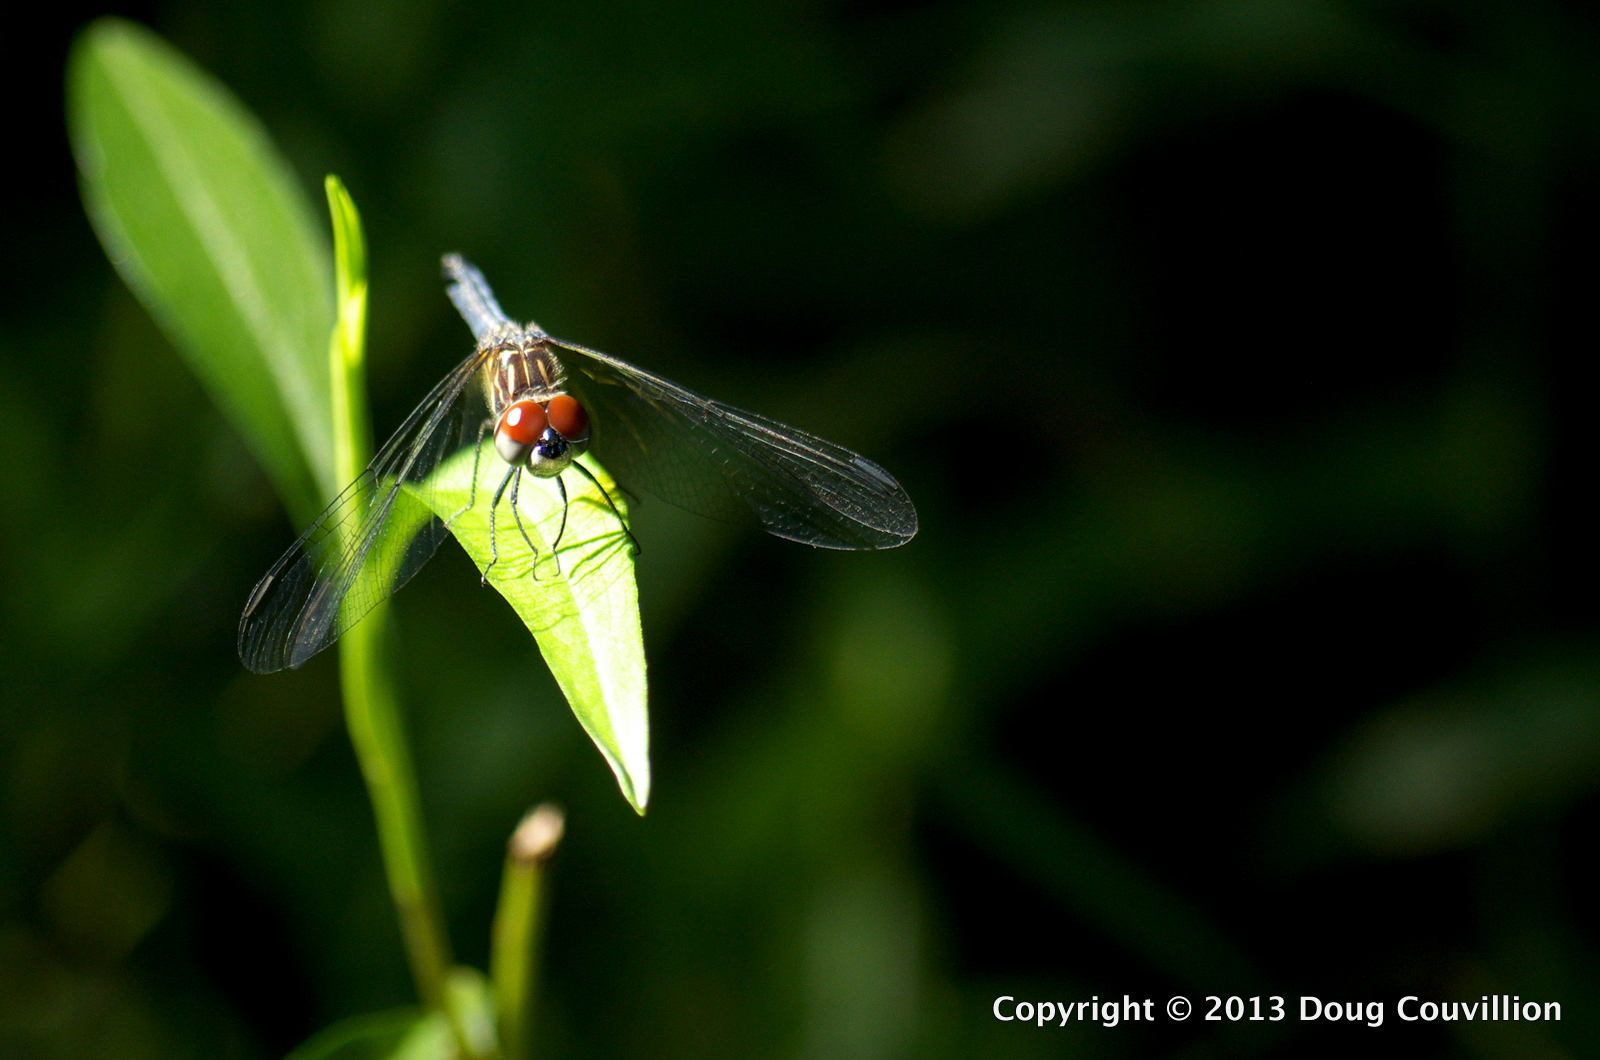 photograph of a dragonfly with bright red eyes resting on a green leaf